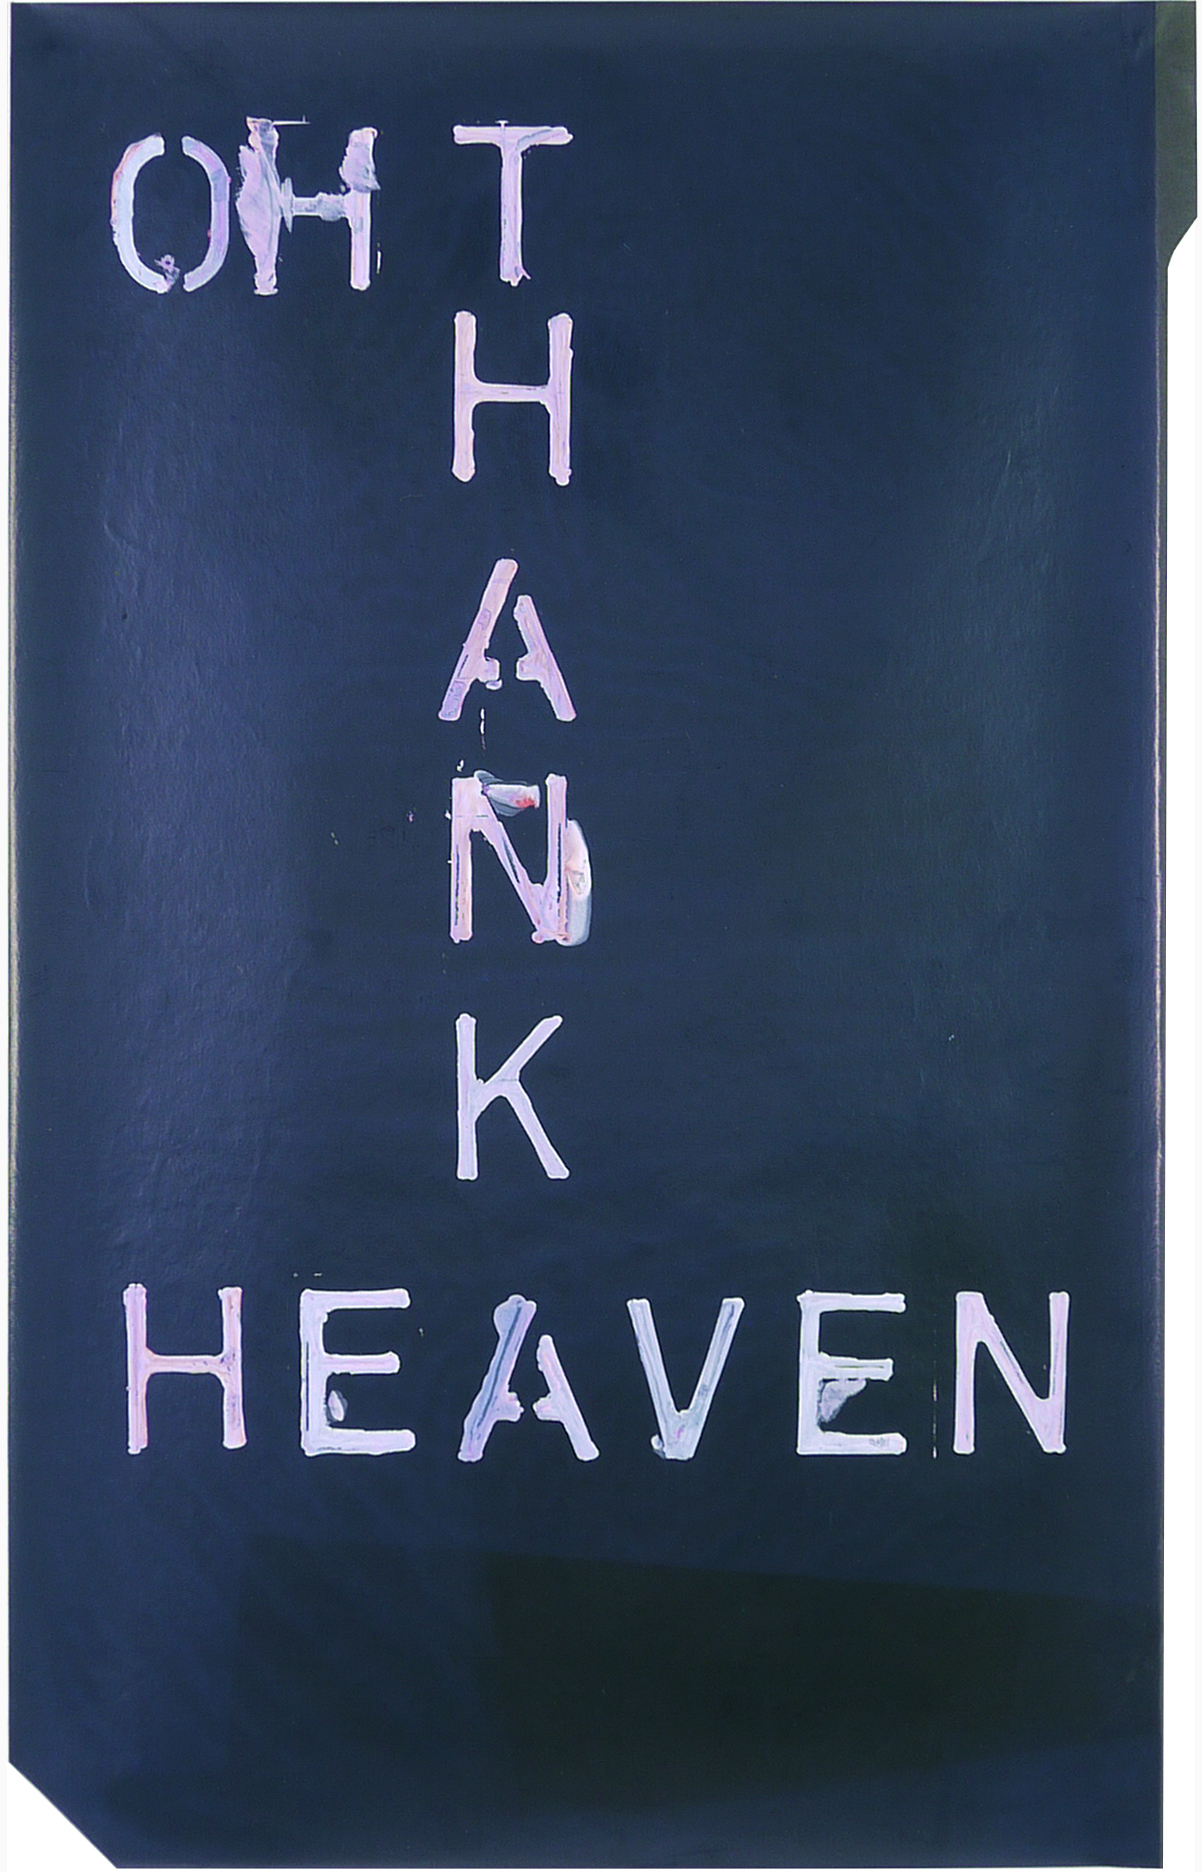 oh thank heaven  8.5 x 14 inches  jiffy on carbon paper  ed. 2